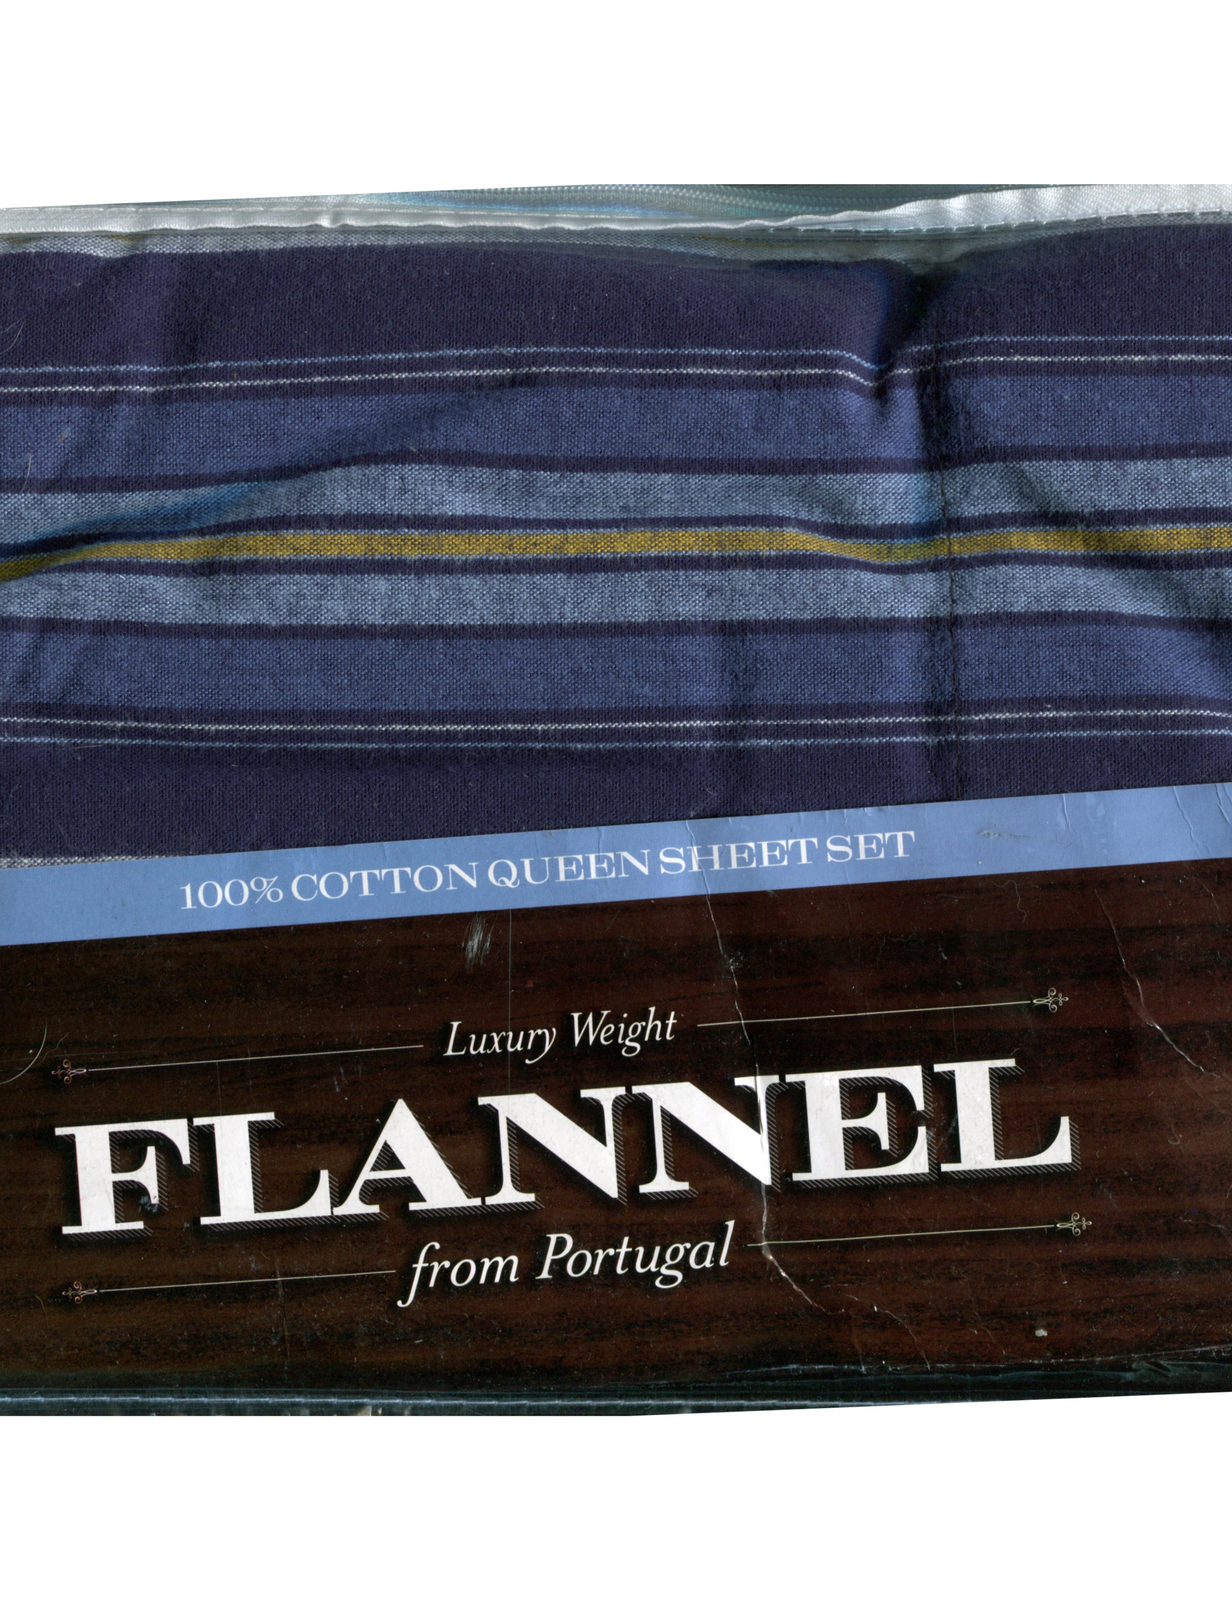 Luxury Weight Flannel From Portugal 100% Cotton QUEEN Sheet Set  - Blue Stripe